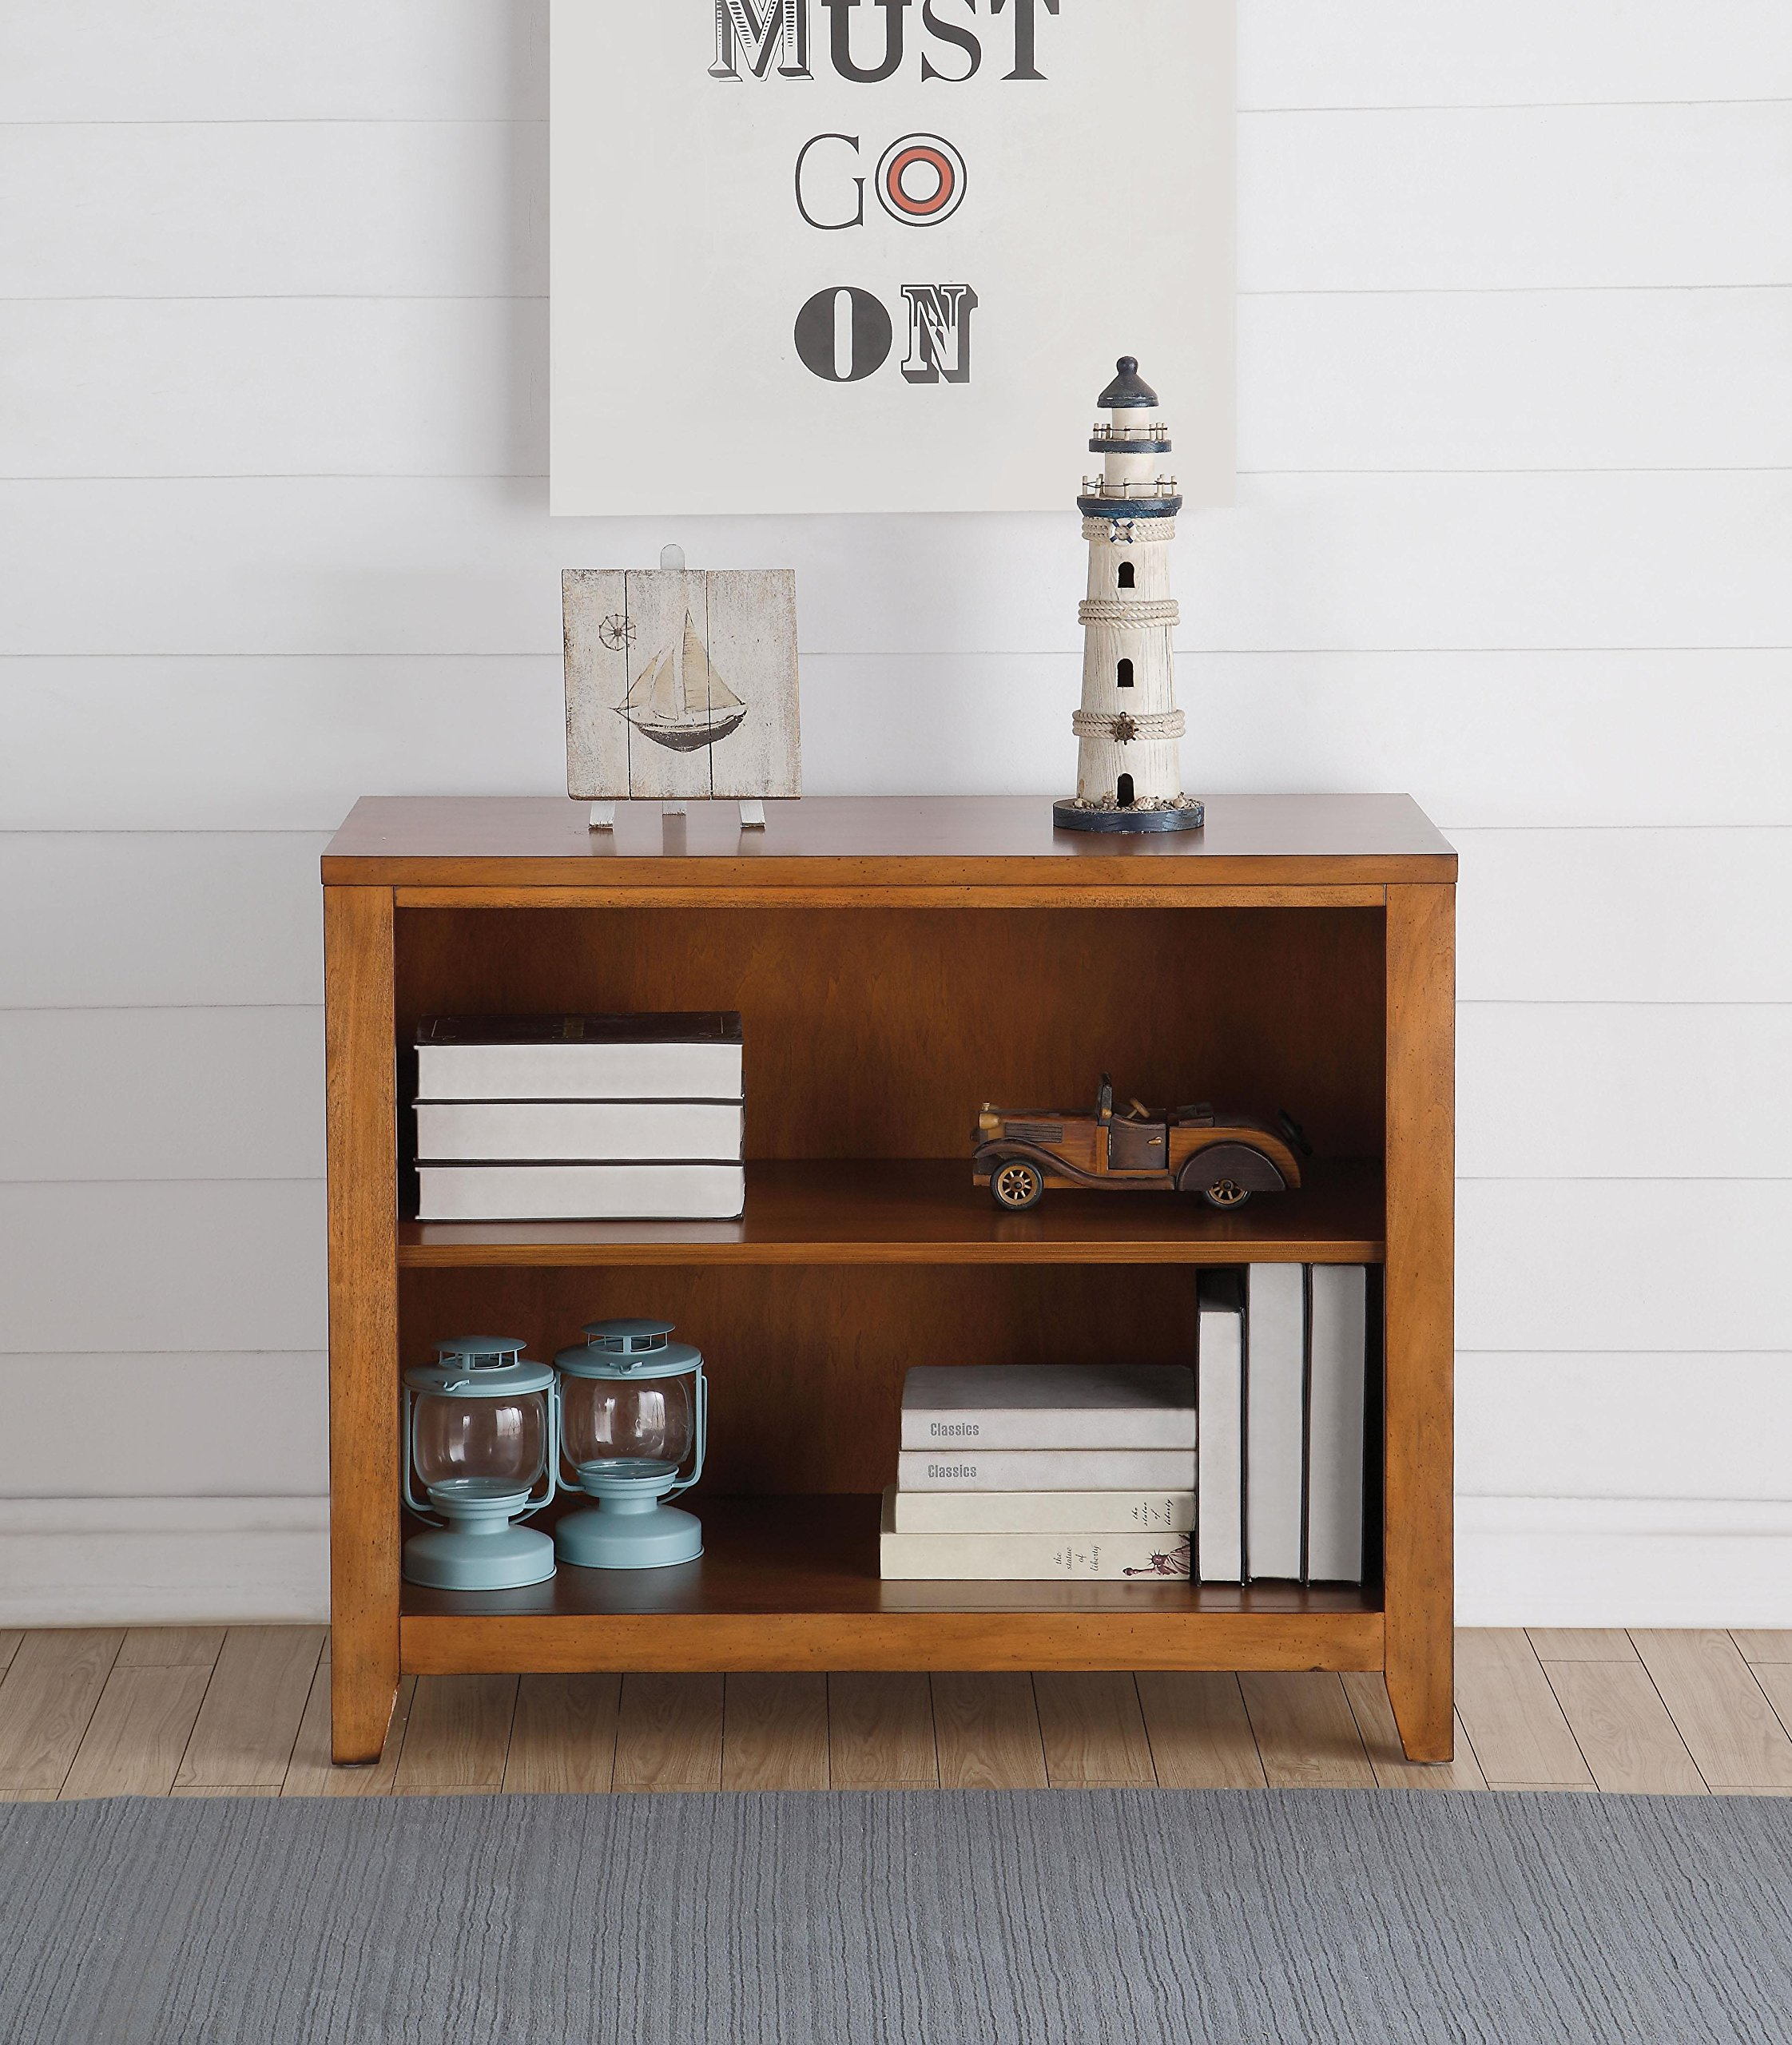 ACME Furniture 30563 Lacey Bookcase, Cherry Oak - Two shelves Chamfered trim Metal knobs - living-room-furniture, living-room, bookcases-bookshelves - 91vpdUU7WSL -